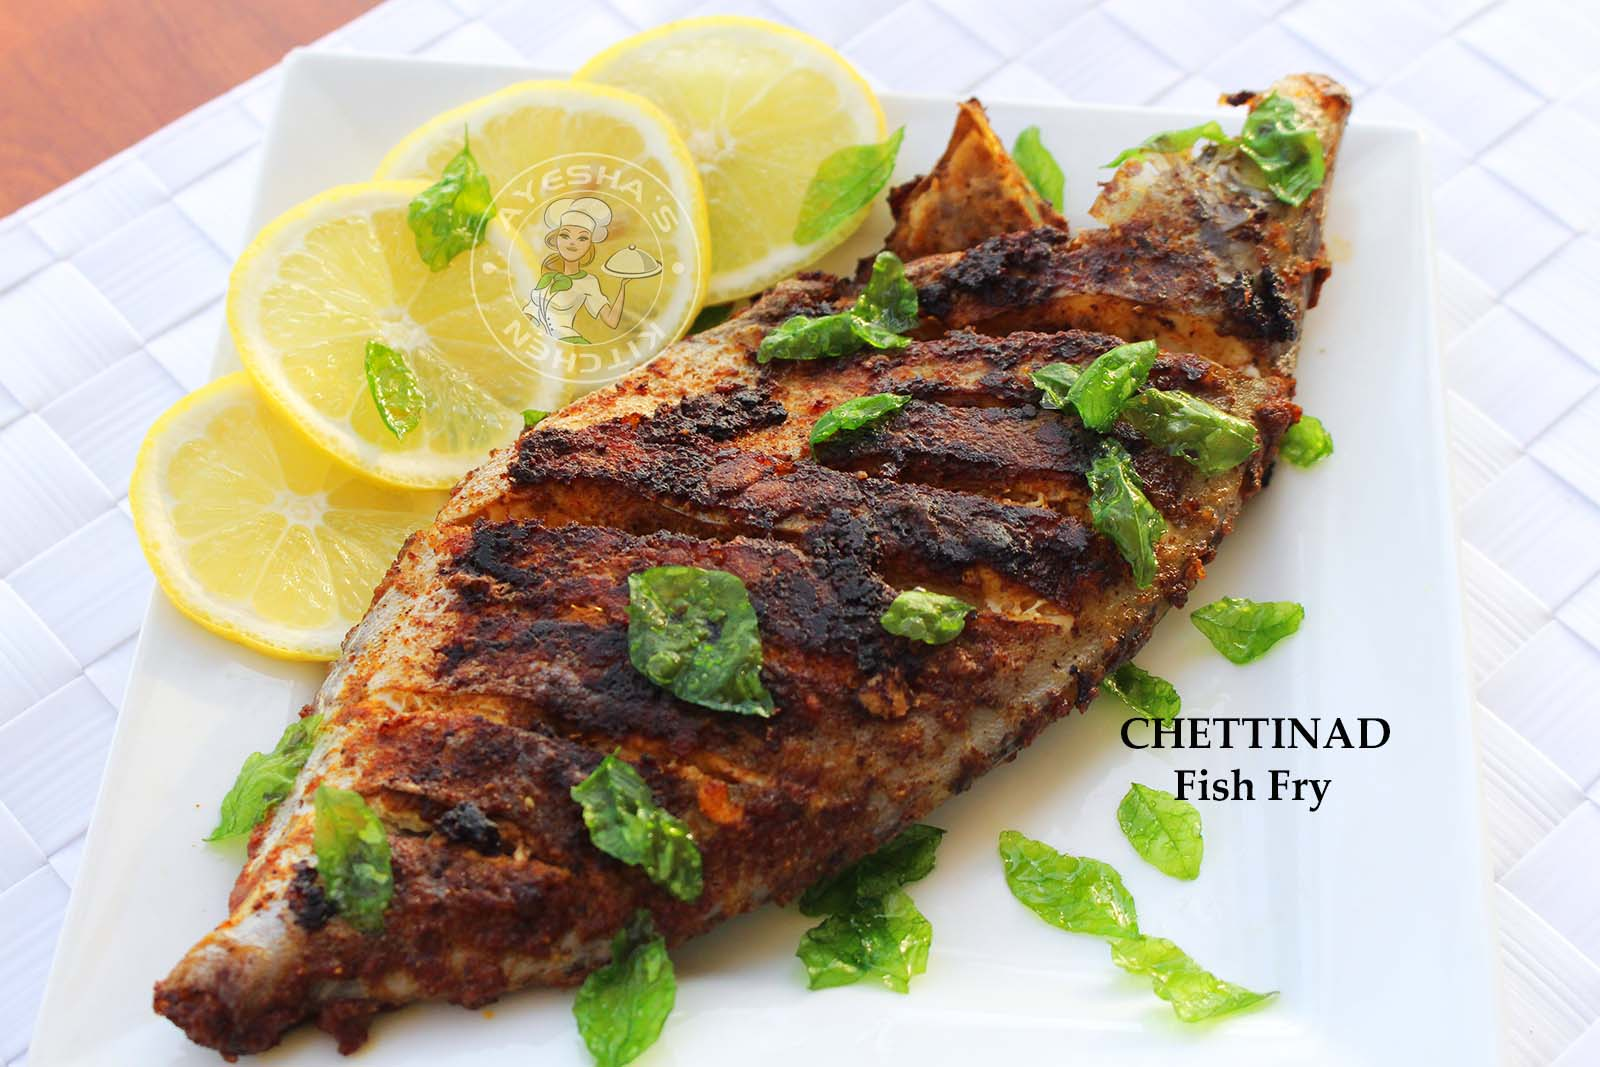 Fish fry recipe chettinad fish fry for Fish fry ingredients